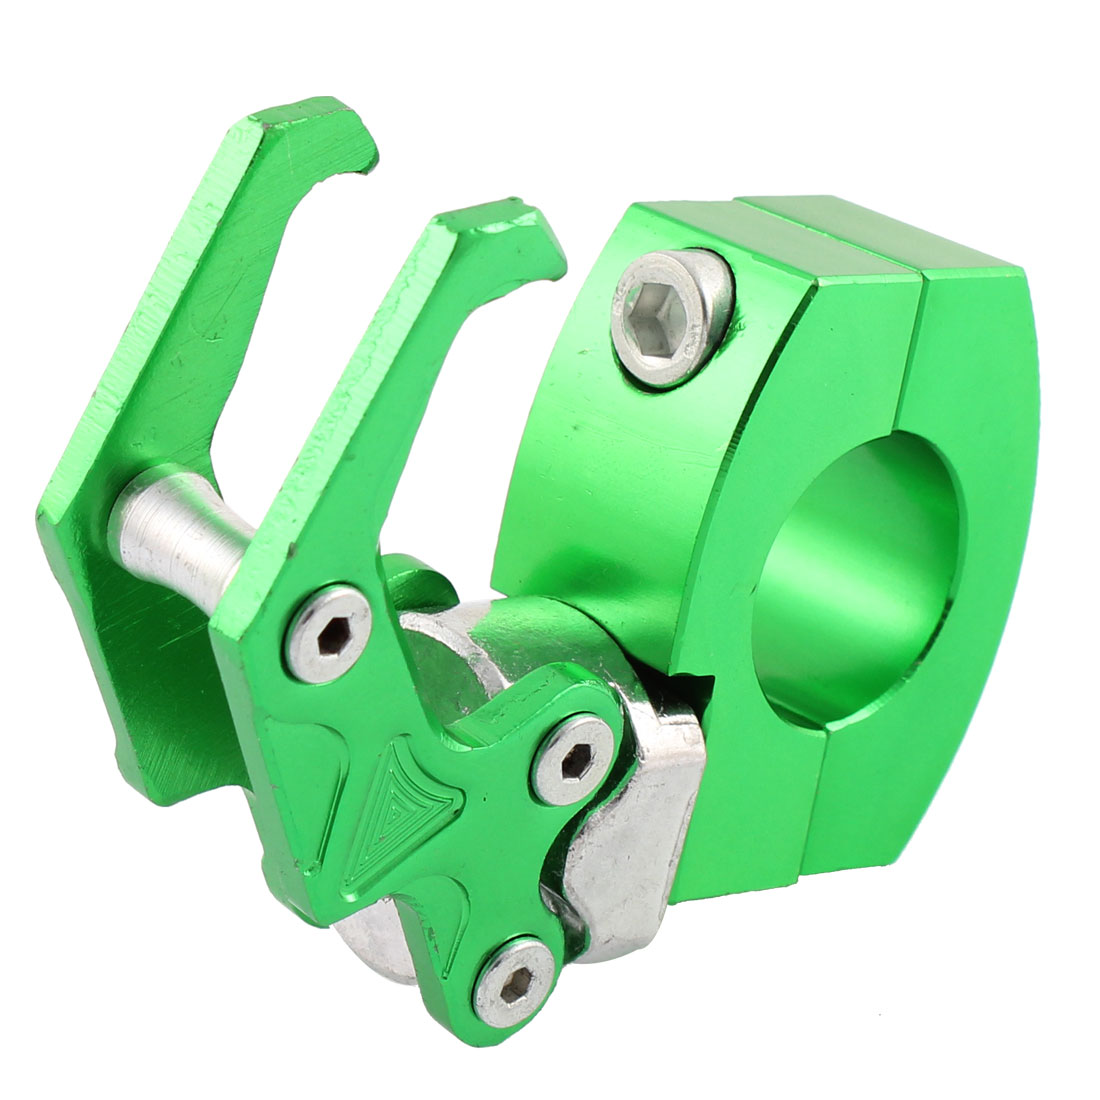 Motorcycle Aluminum Eagle Claw Shaped Design Scooter Hook Green